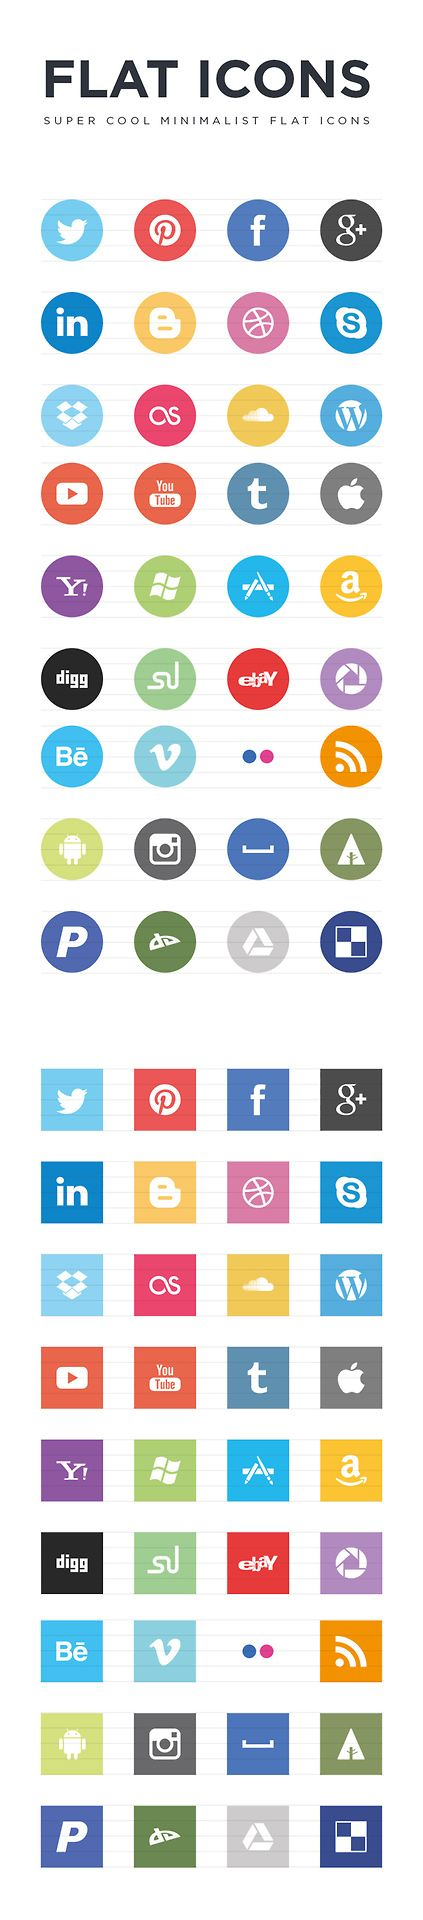 Free Super Cool Minimalist Flat Social Icons via Web Design Freebies